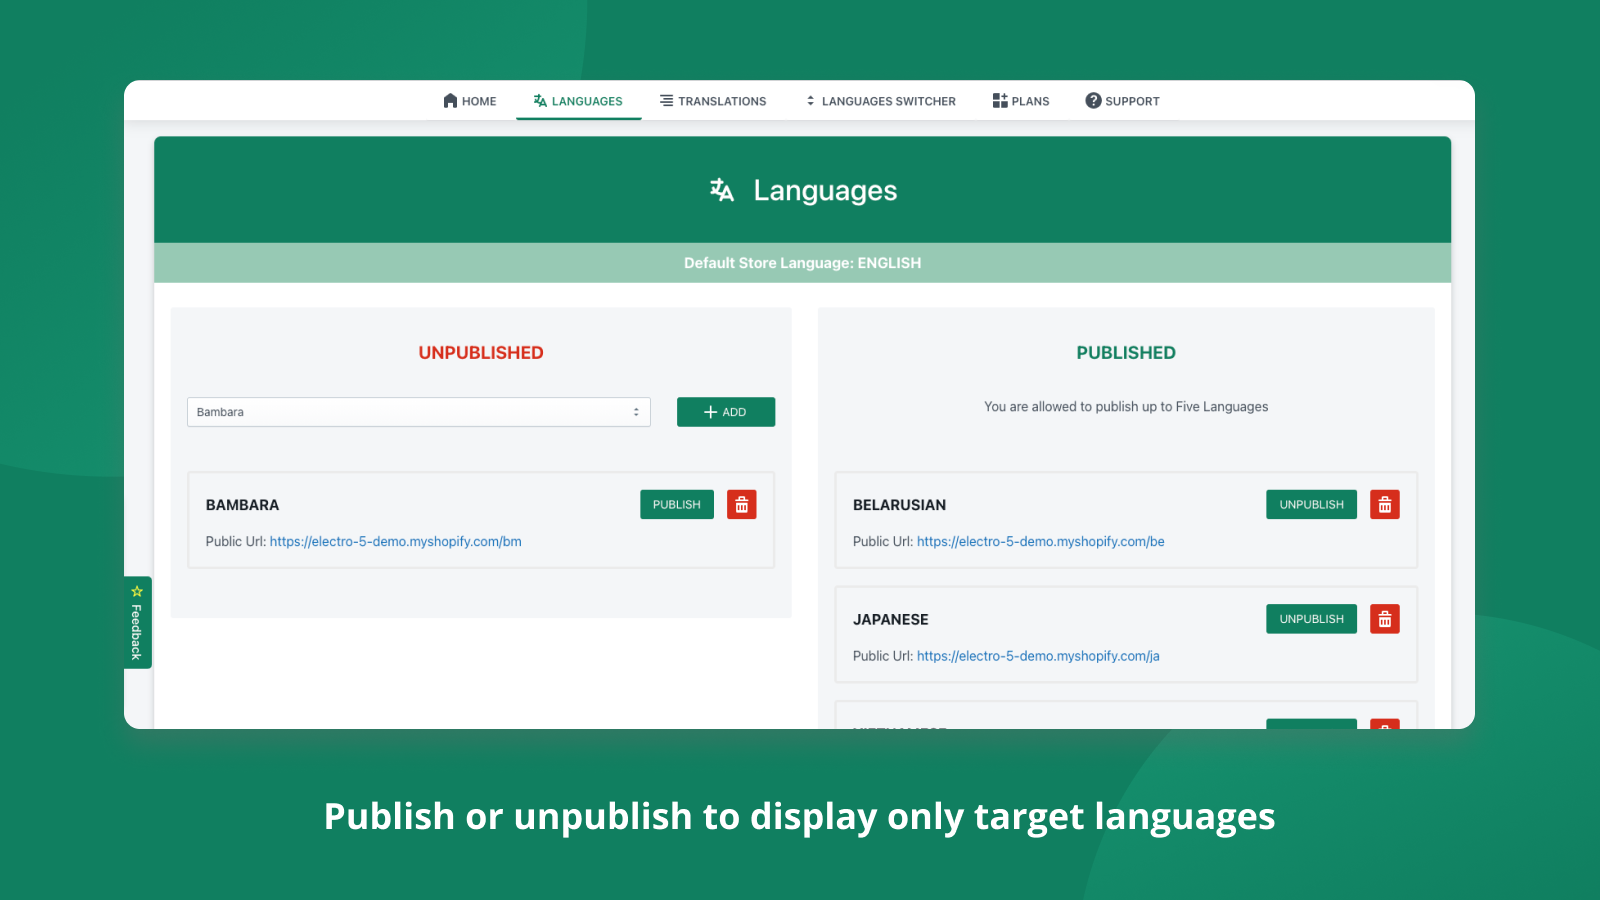 Publish or unpublish to display only target languages